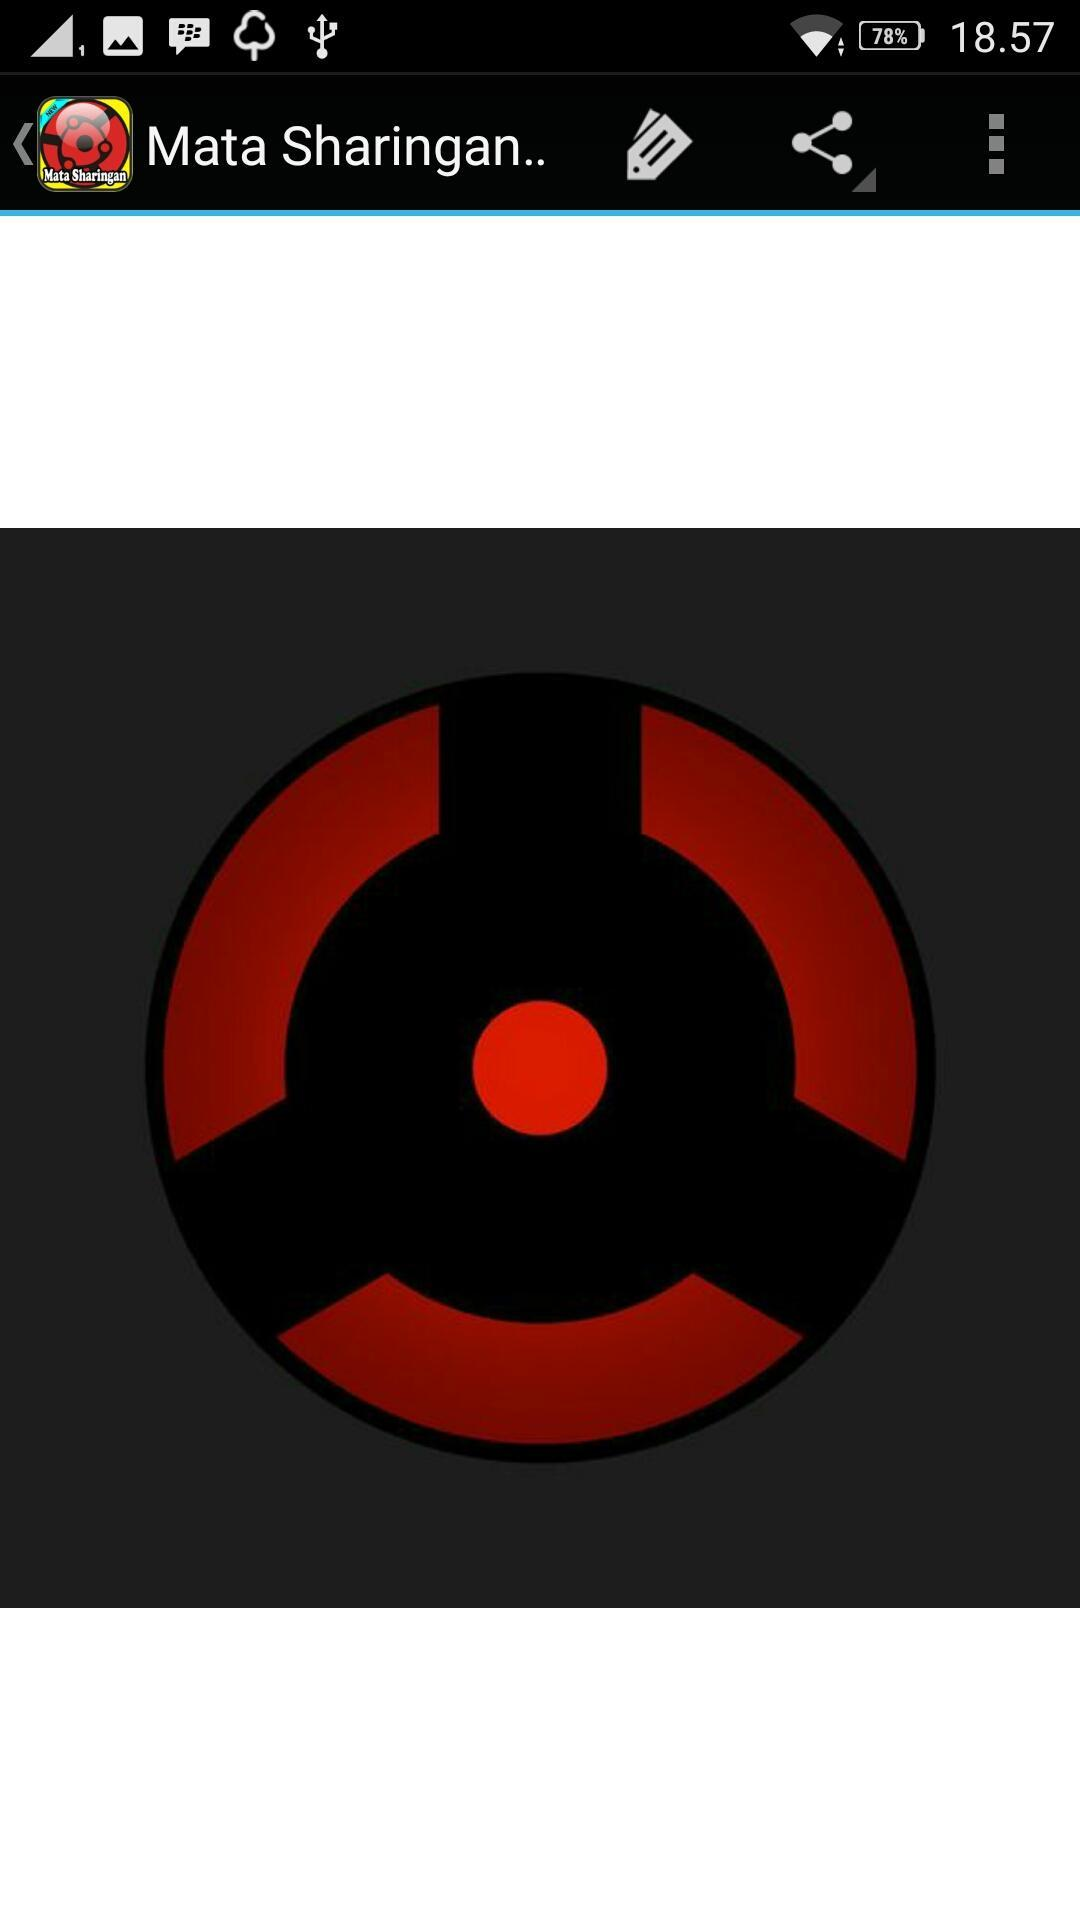 Mata Sharingan Wallpaper For Android APK Download